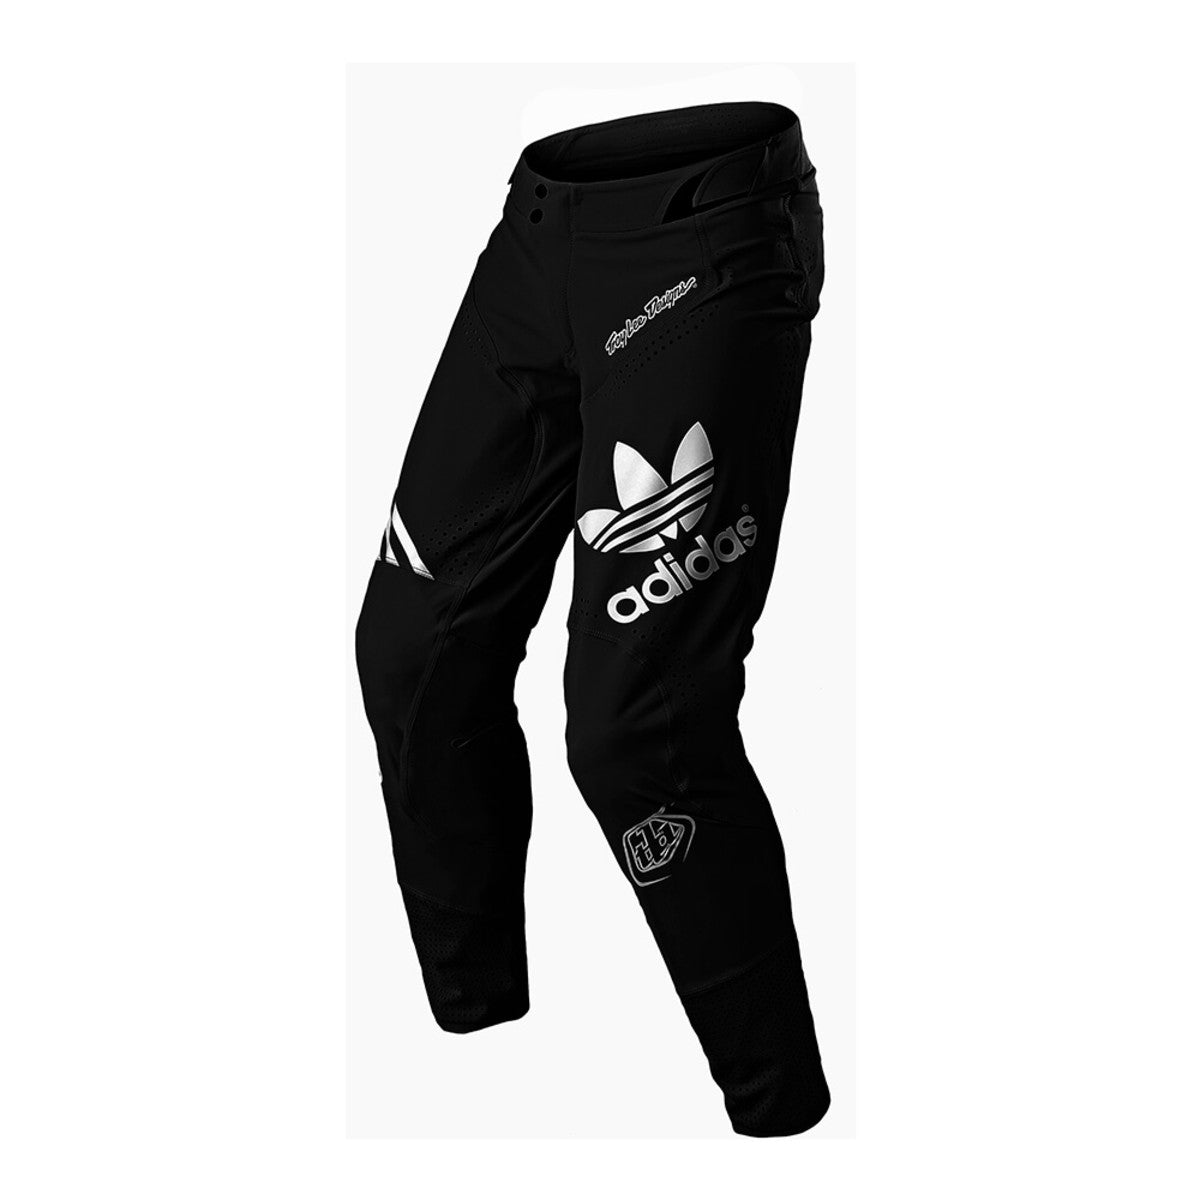 Troy Lee Designs Ultra Adidas pants - Black